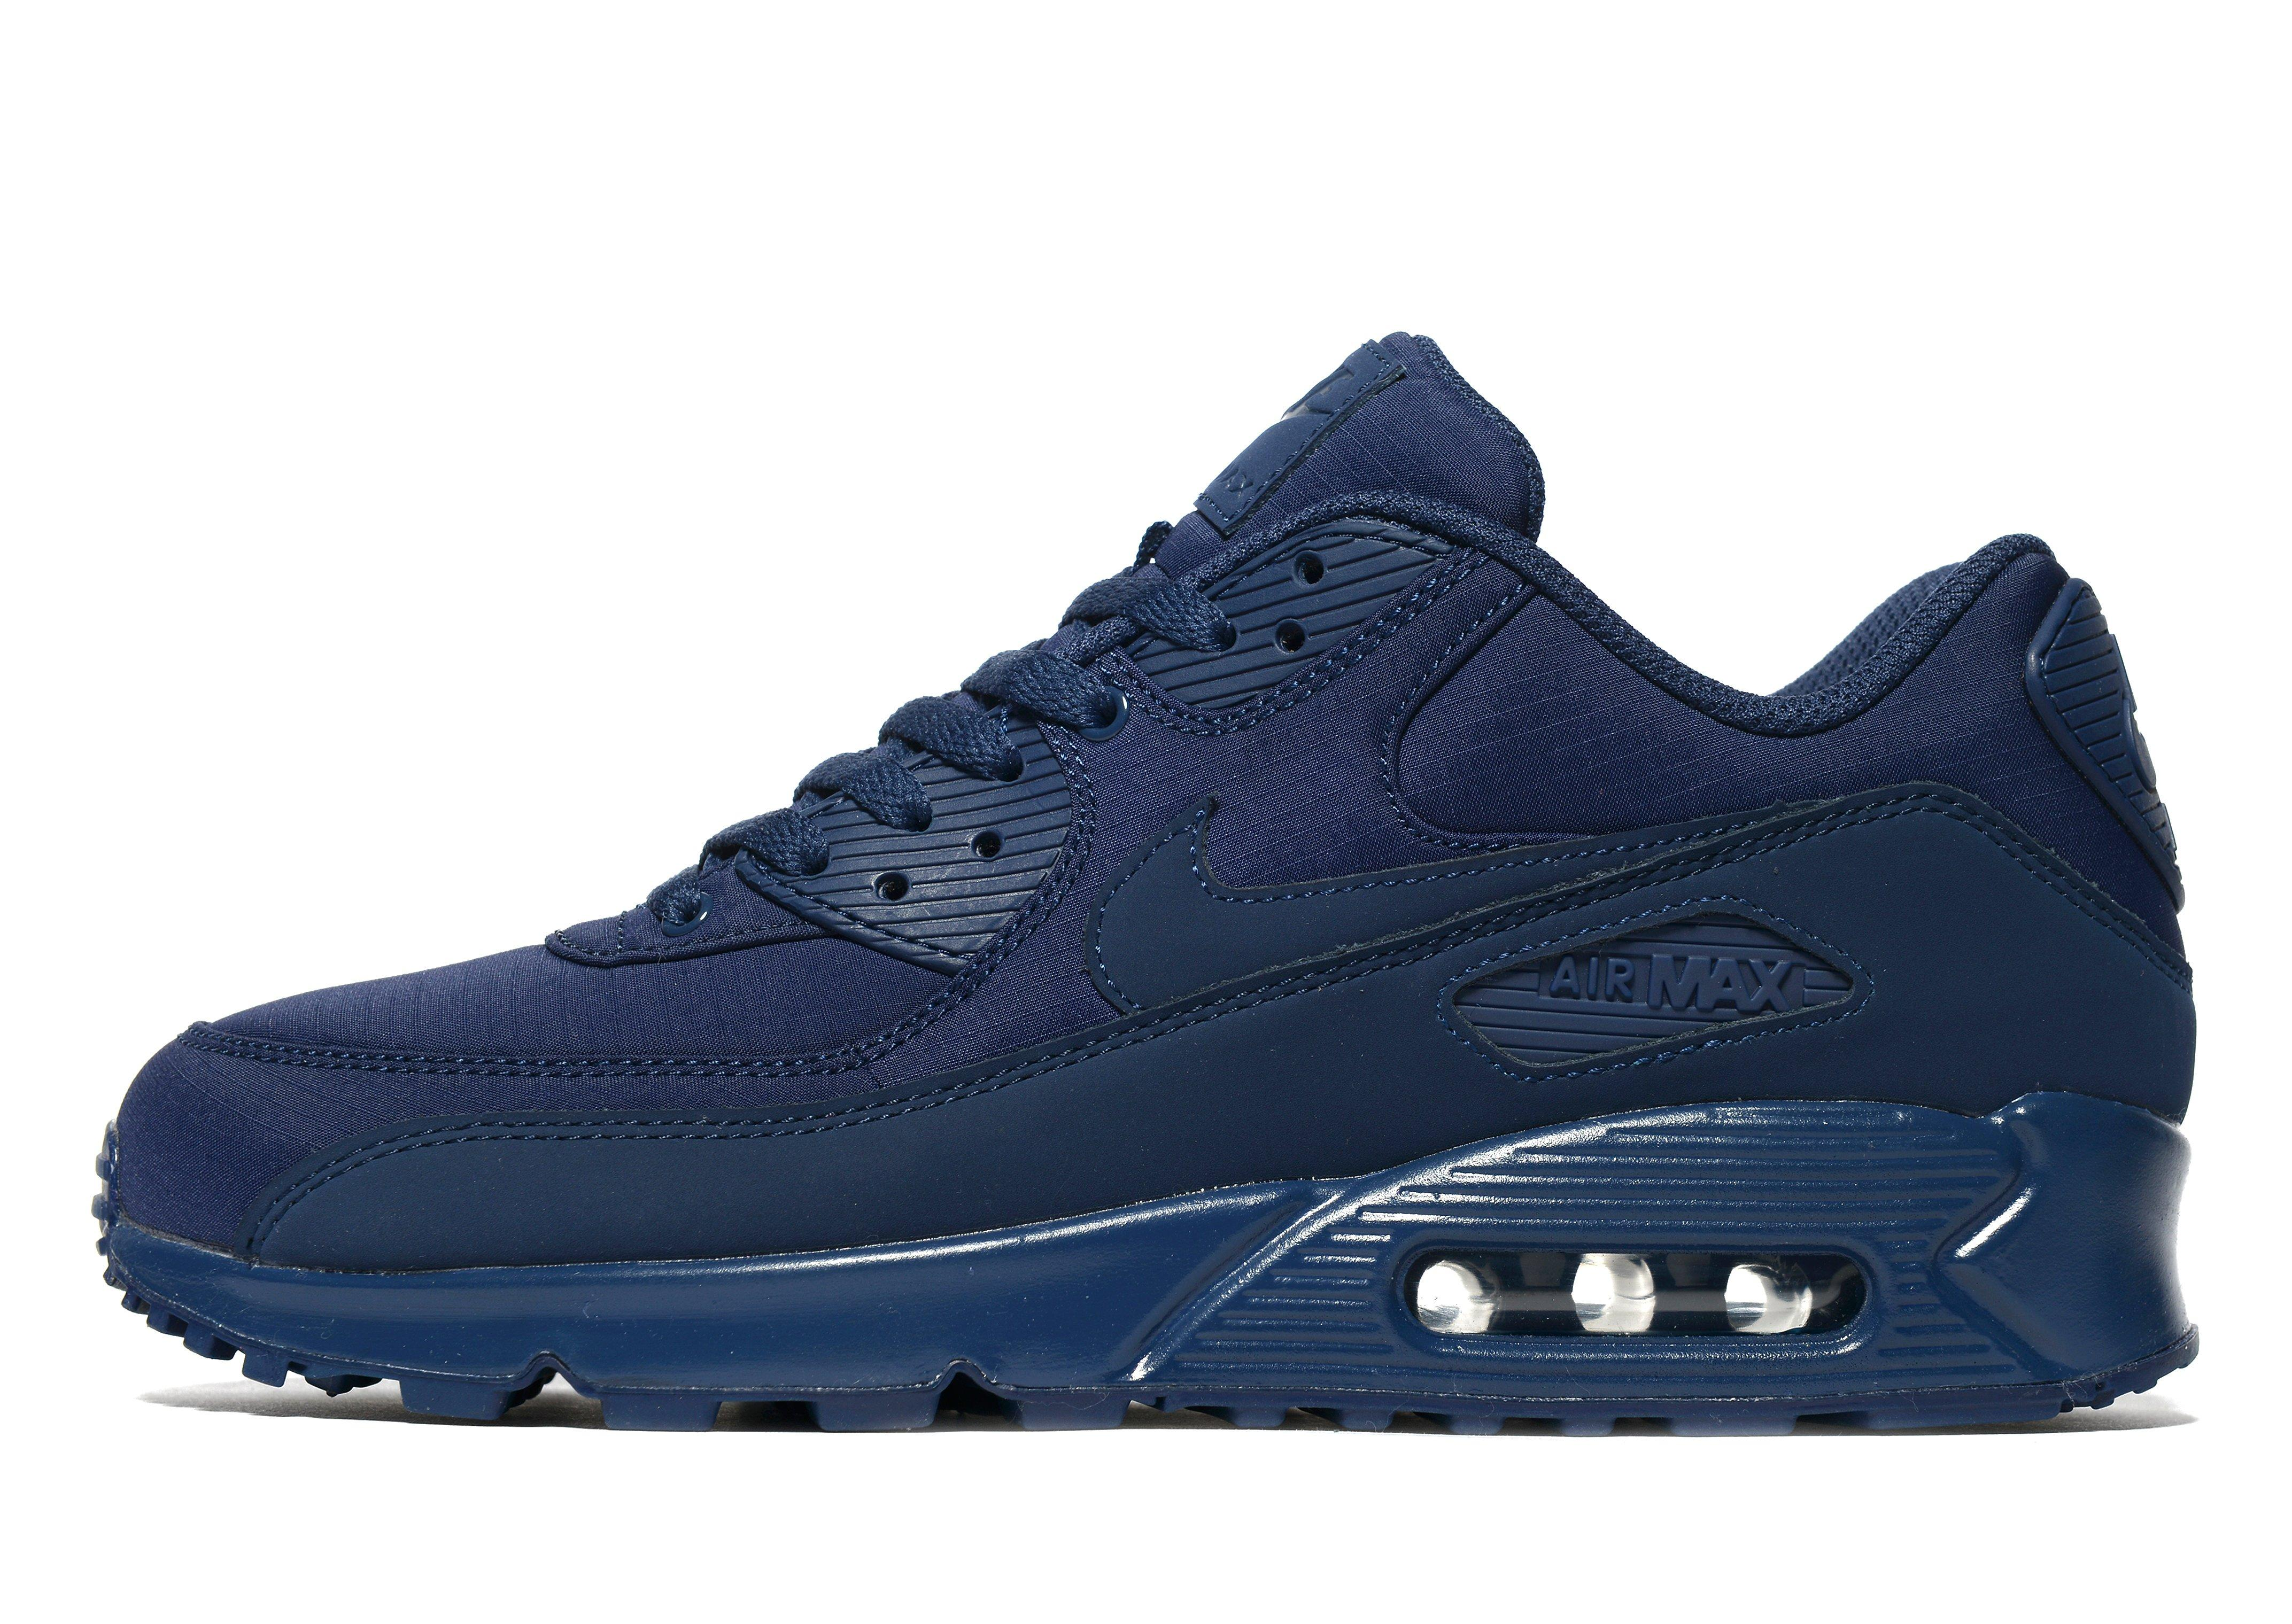 a3b8070da2105 denmark air max torch 3 amazon c0e28 068a7